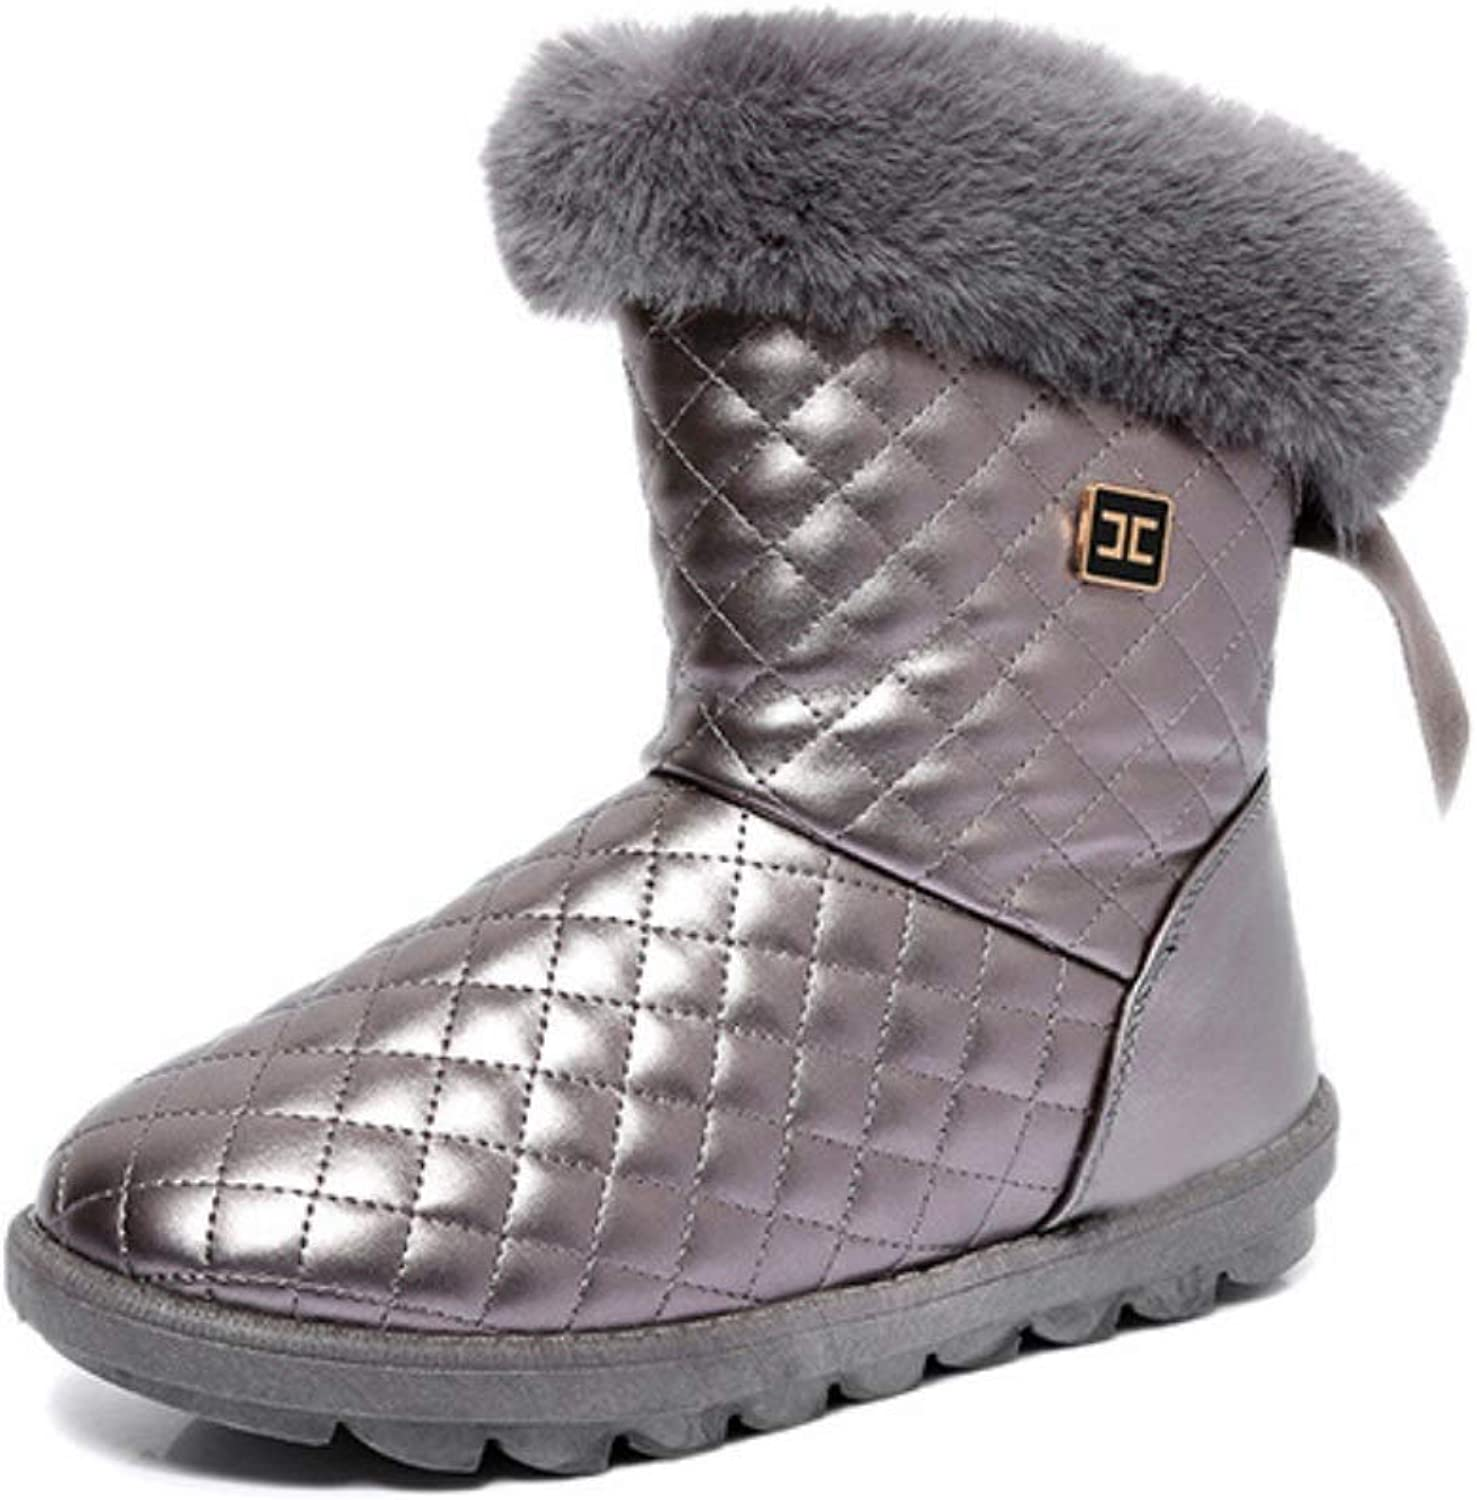 Ladies Warm Boot Winter Waterproof Snow Boots New Women shoes Woman Faux Fur Mid-Calf Warm Plush Femme Booties for Daily Warmth